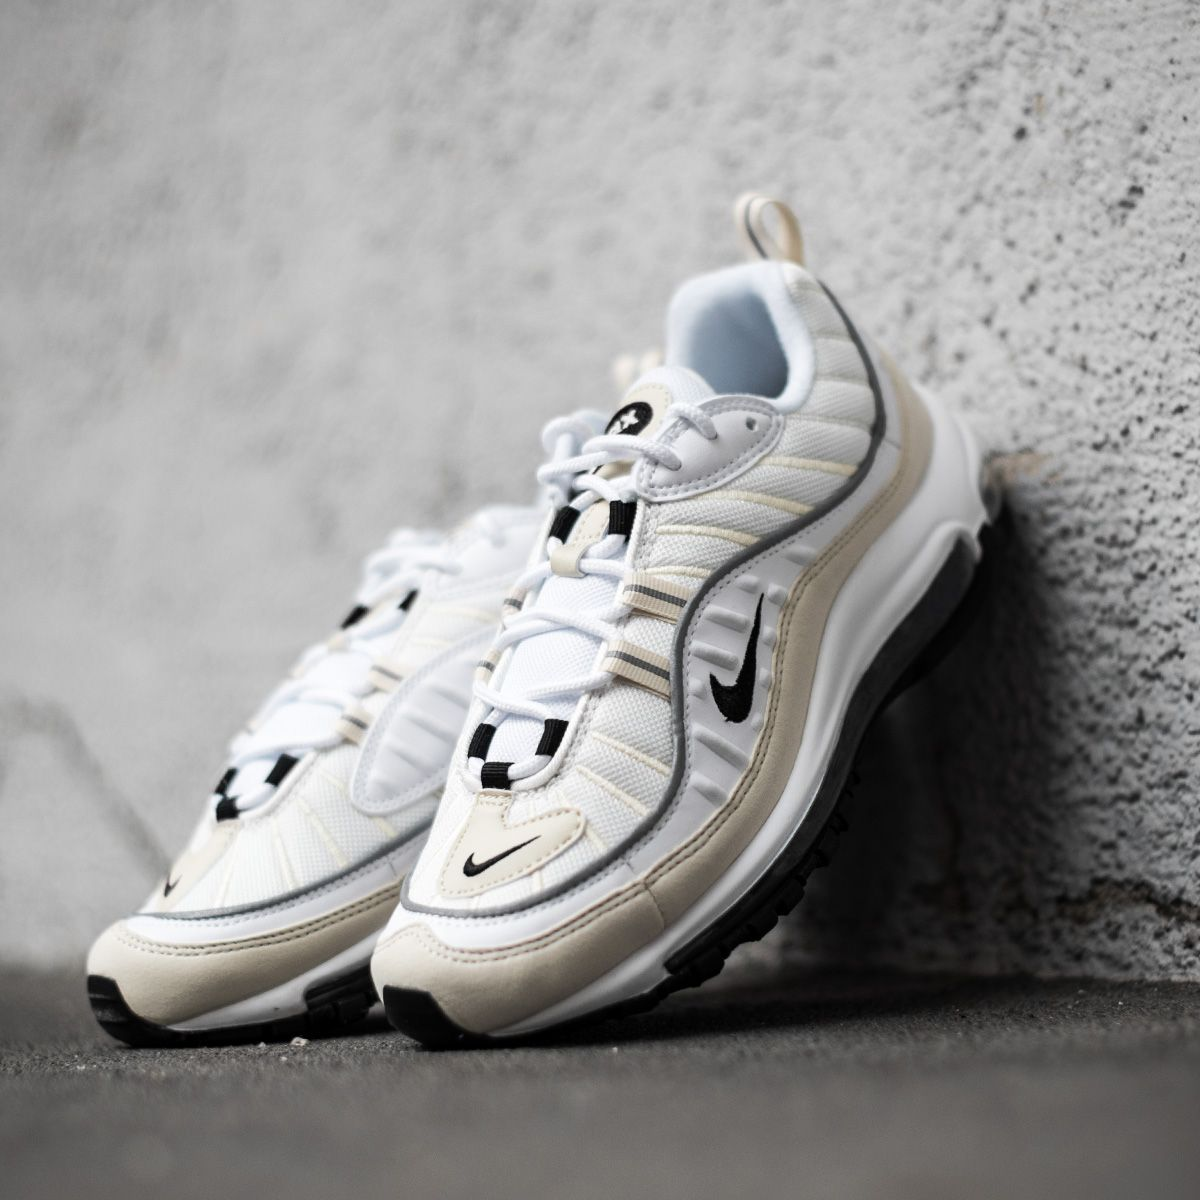 3a3c9153f0c Nike s Air Max 98 celebration continues with the  Seismic Velocity   colorway. In honor